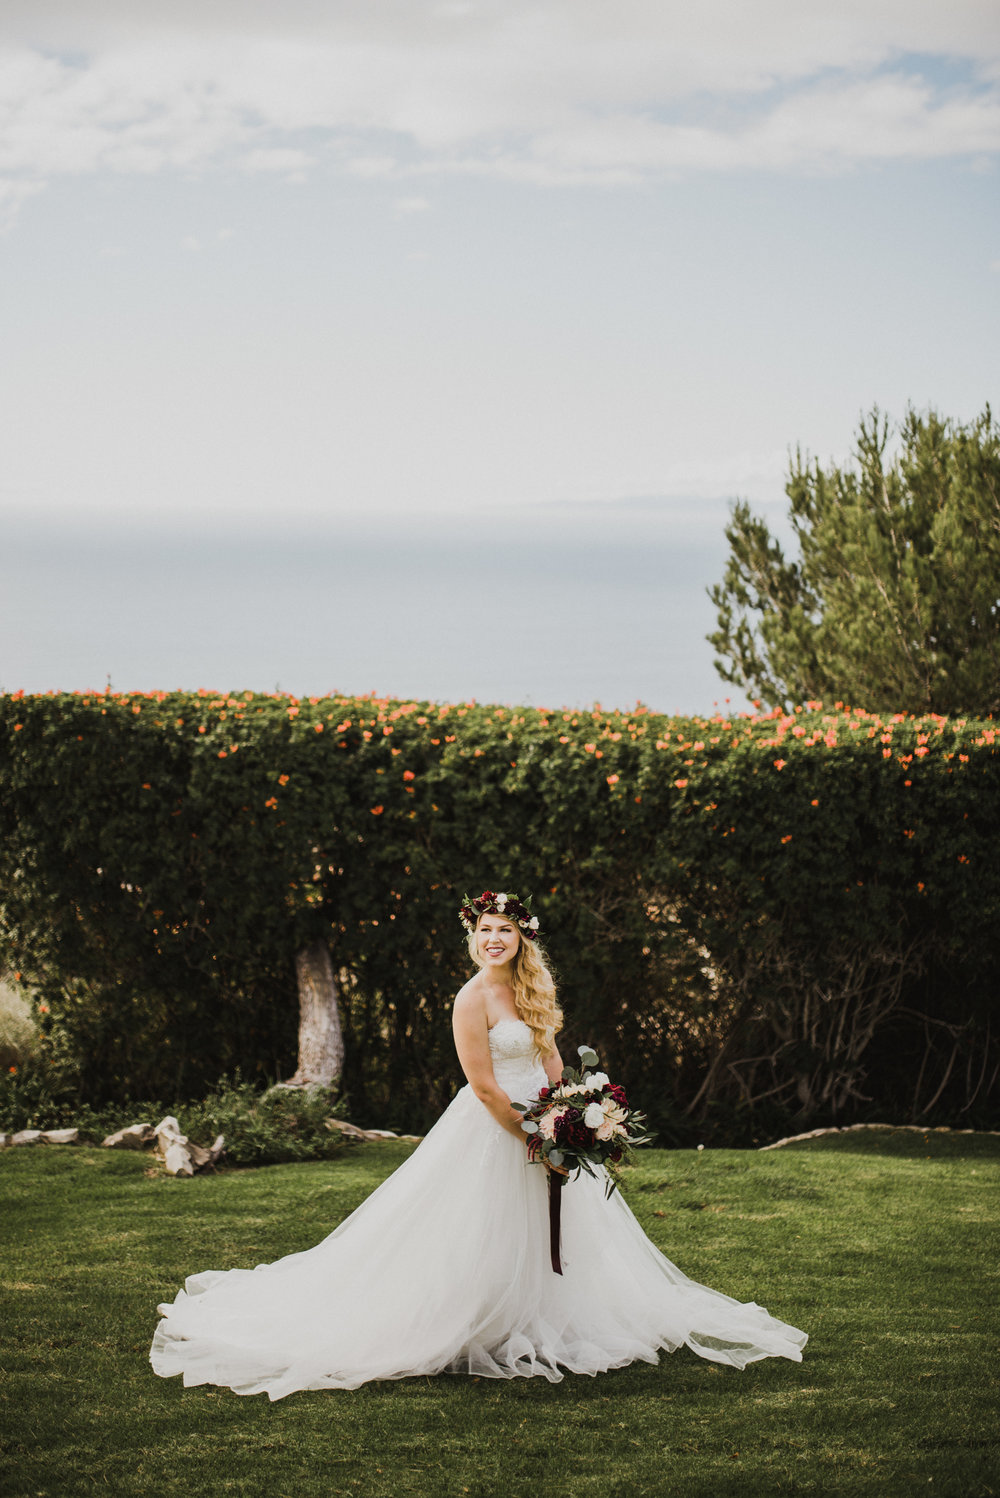 ©Isaiah + Taylor Photography - La Venta Inn Wedding, Palos Verdes Estates-5.jpg